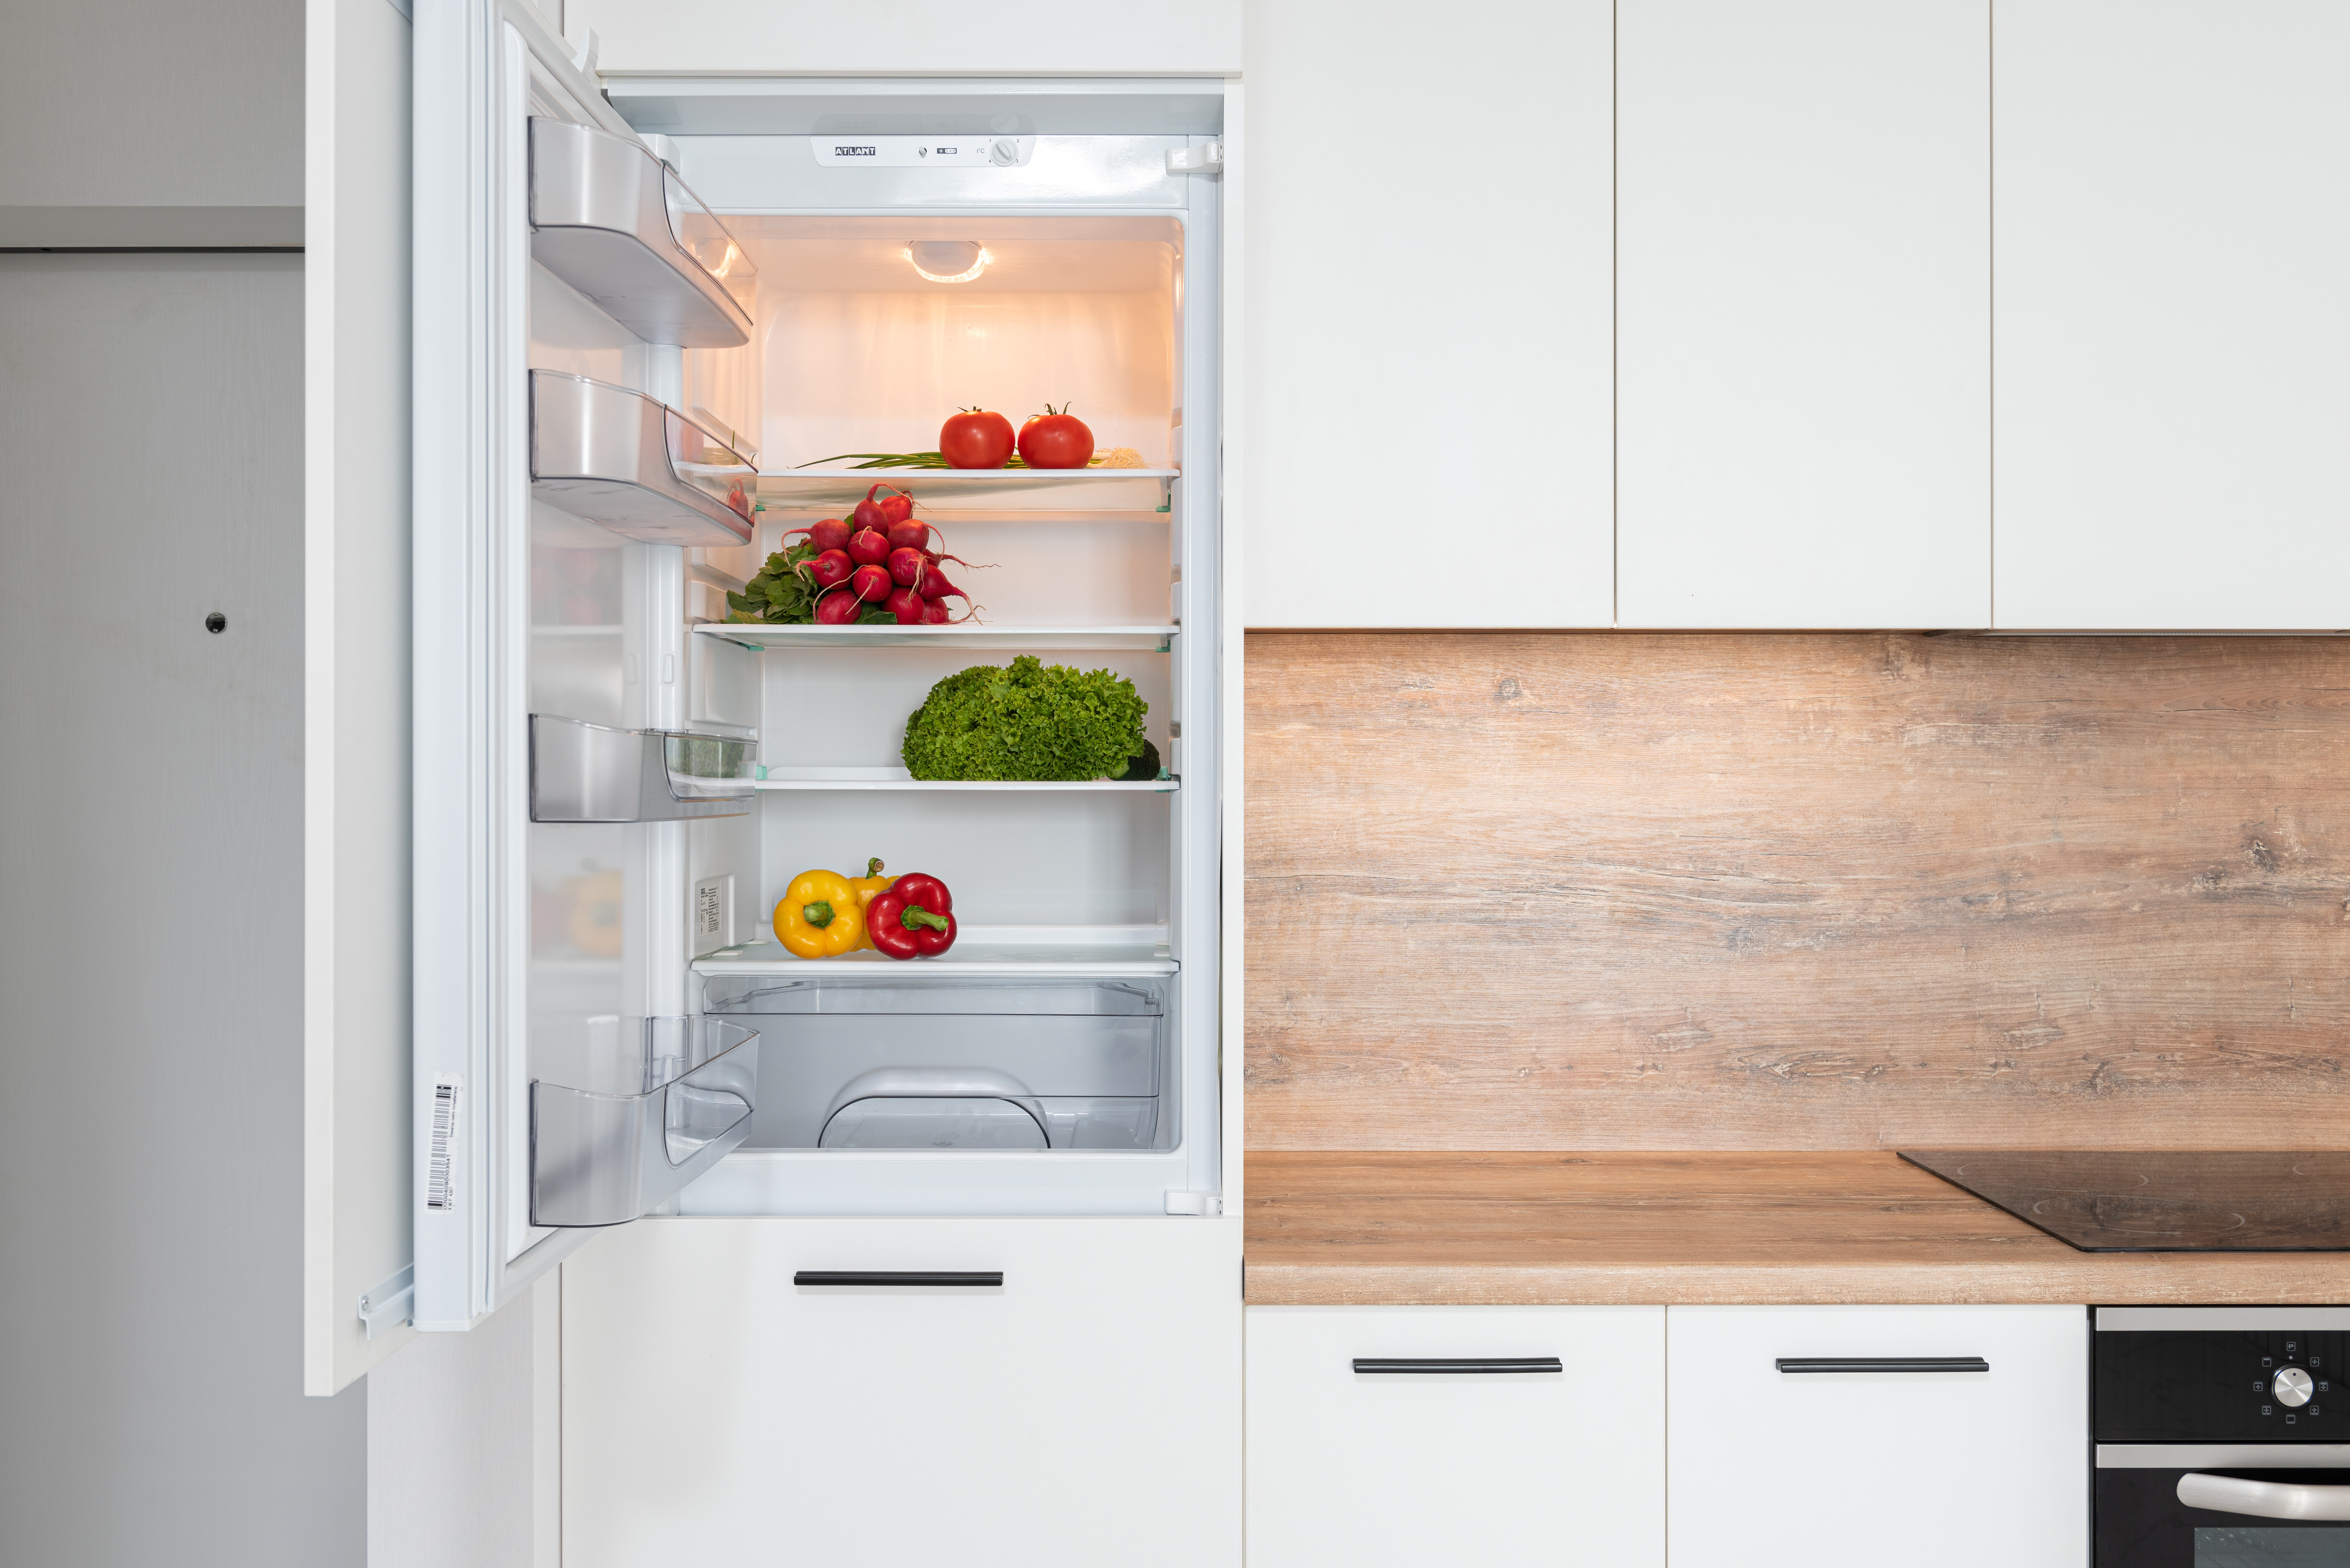 Techniques for choosing a refrigerator: how to choose the refrigerator in order to get the money's worth for us